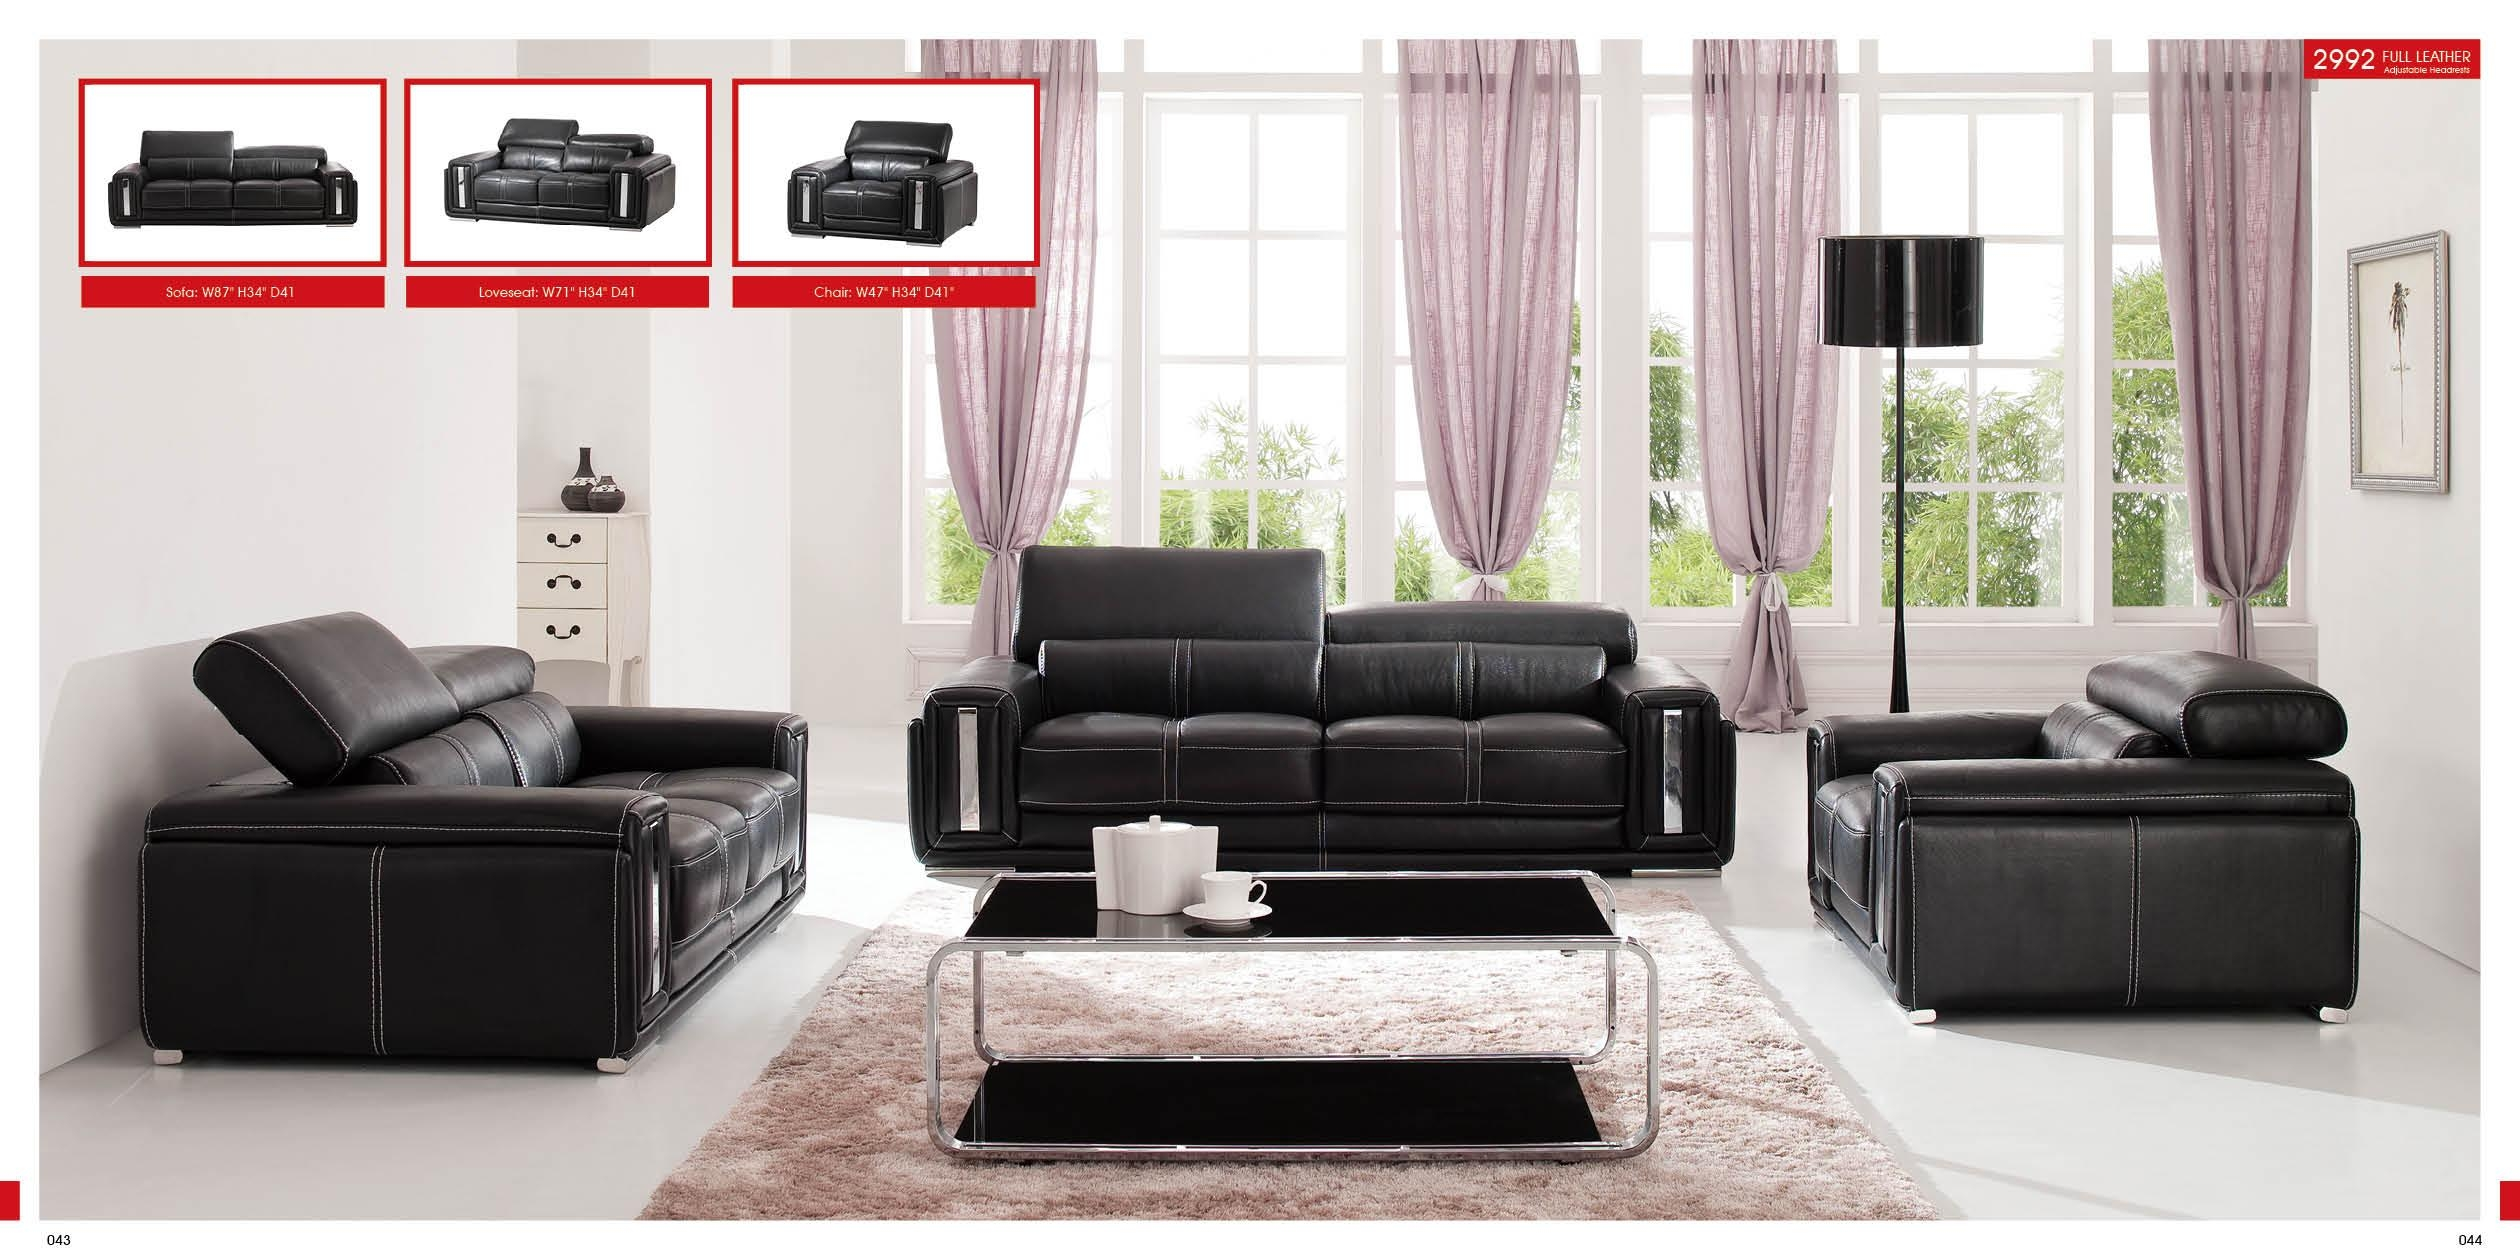 Mesmerizing Cheap Living Room Sectionals Ideas – Used Couches Inside Sofa Chairs For Living Room (Image 16 of 20)